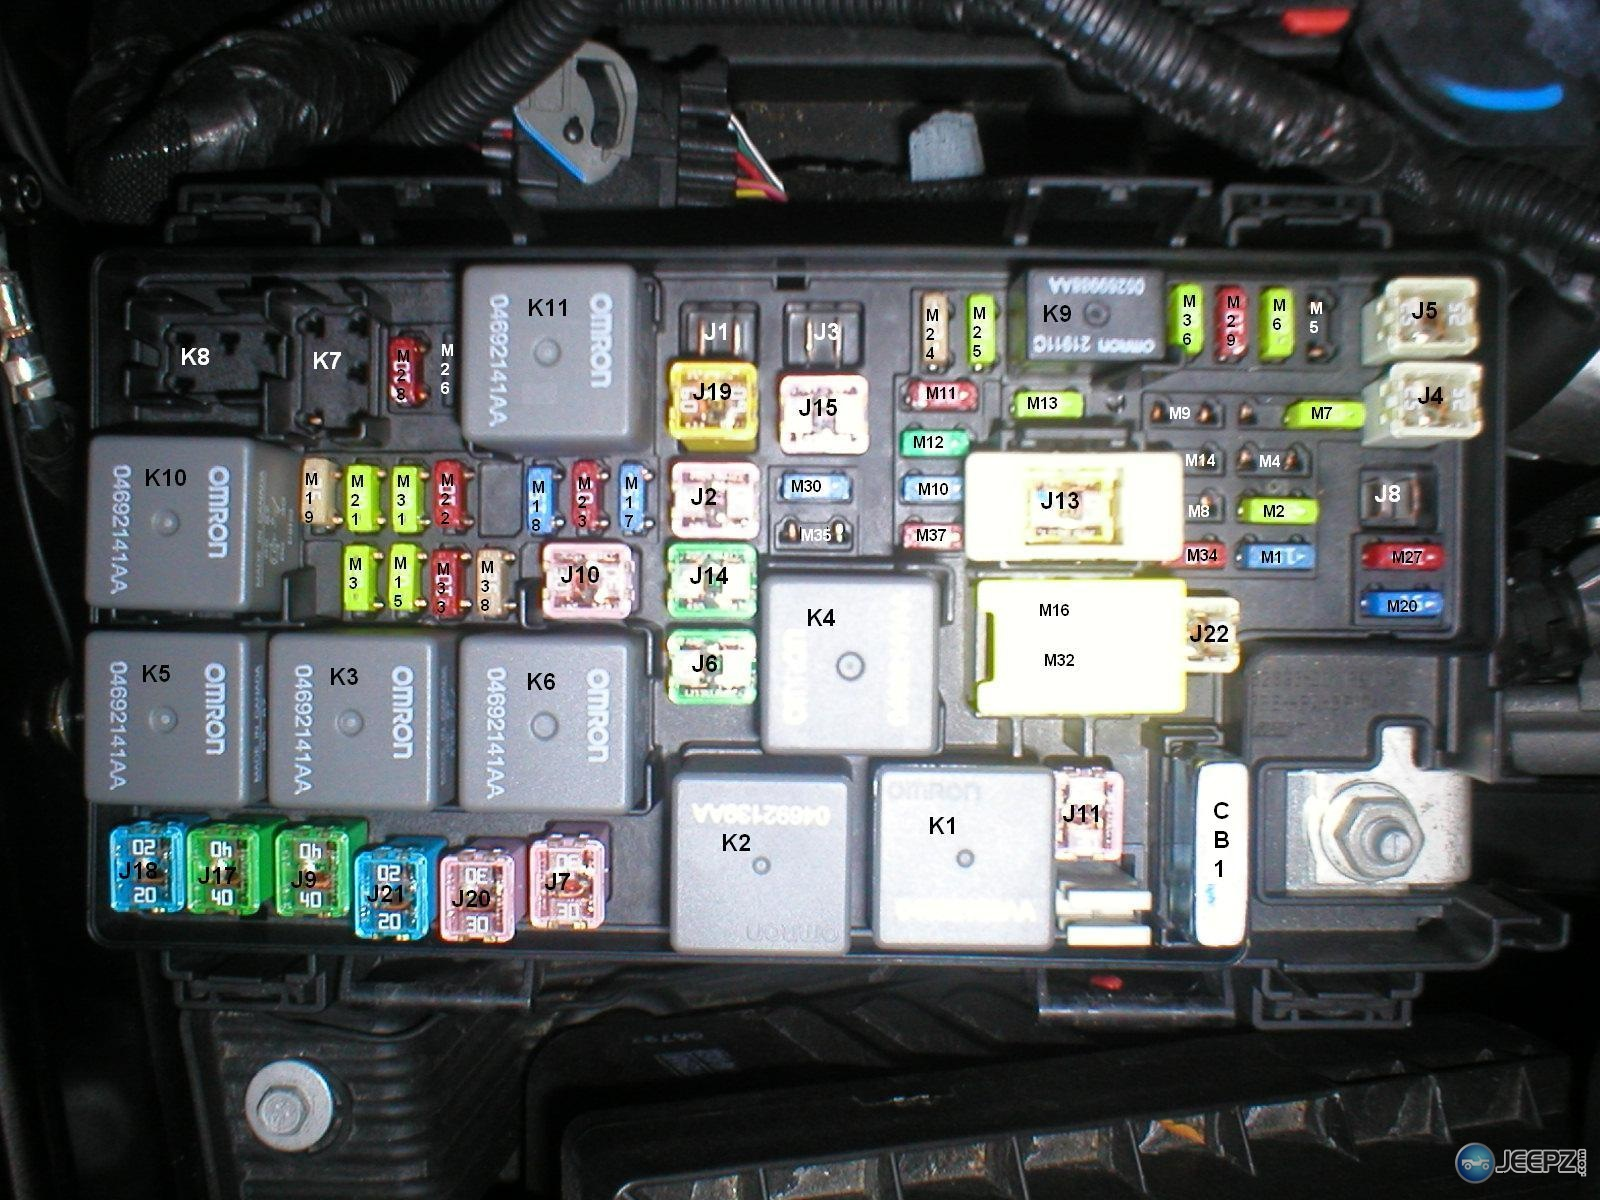 Jeep JK 2009 Fuse Map Layout Diagram